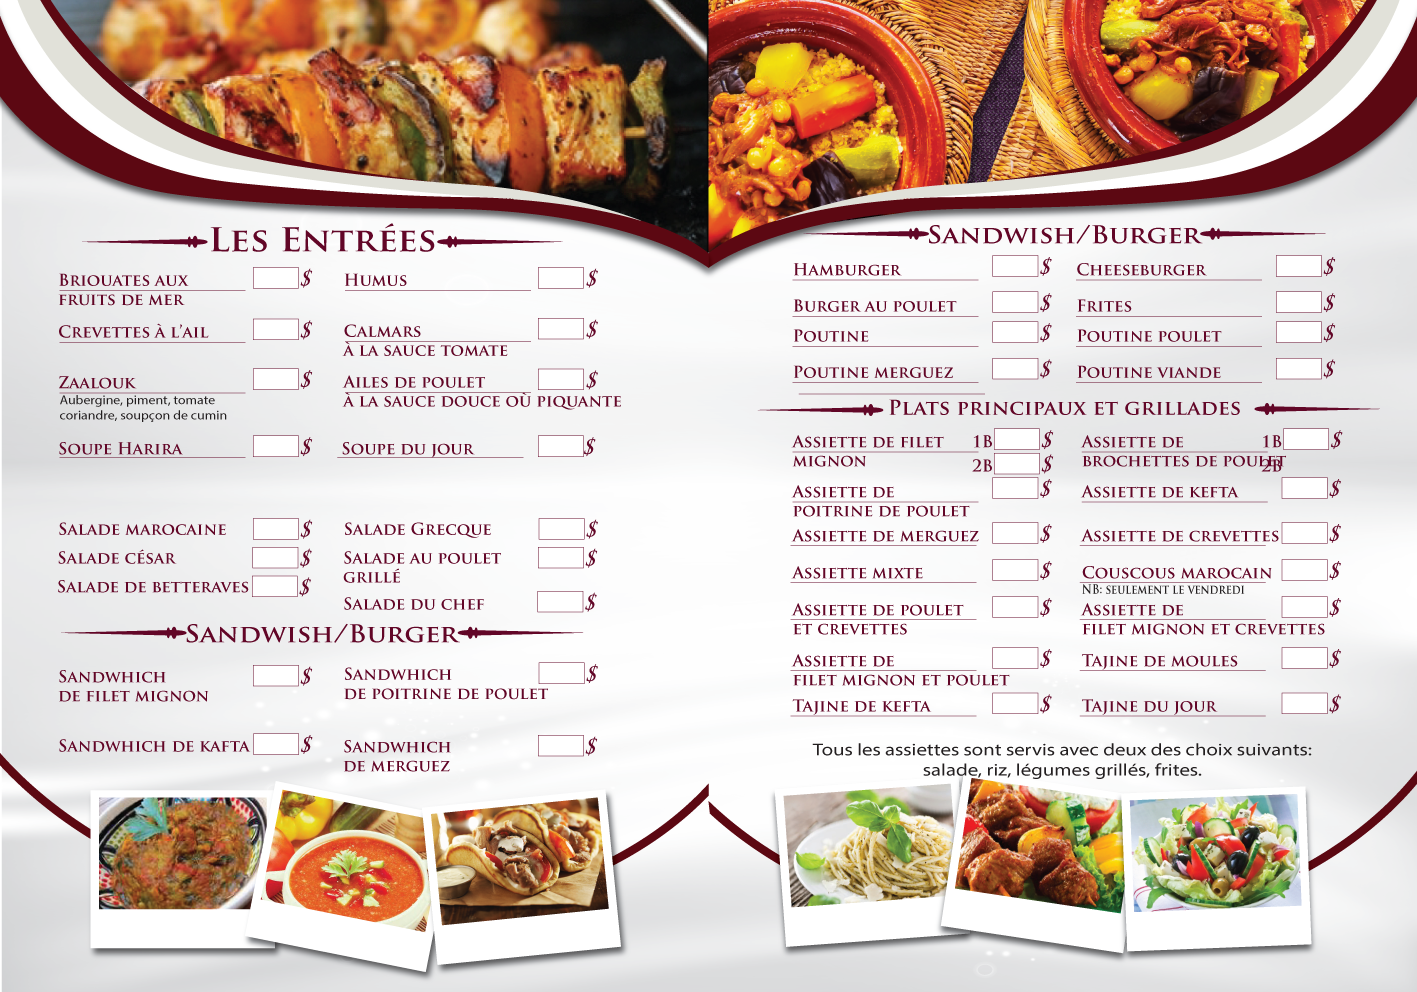 7 serious elegant menu designs for a business in canada for Mediterranean food menu